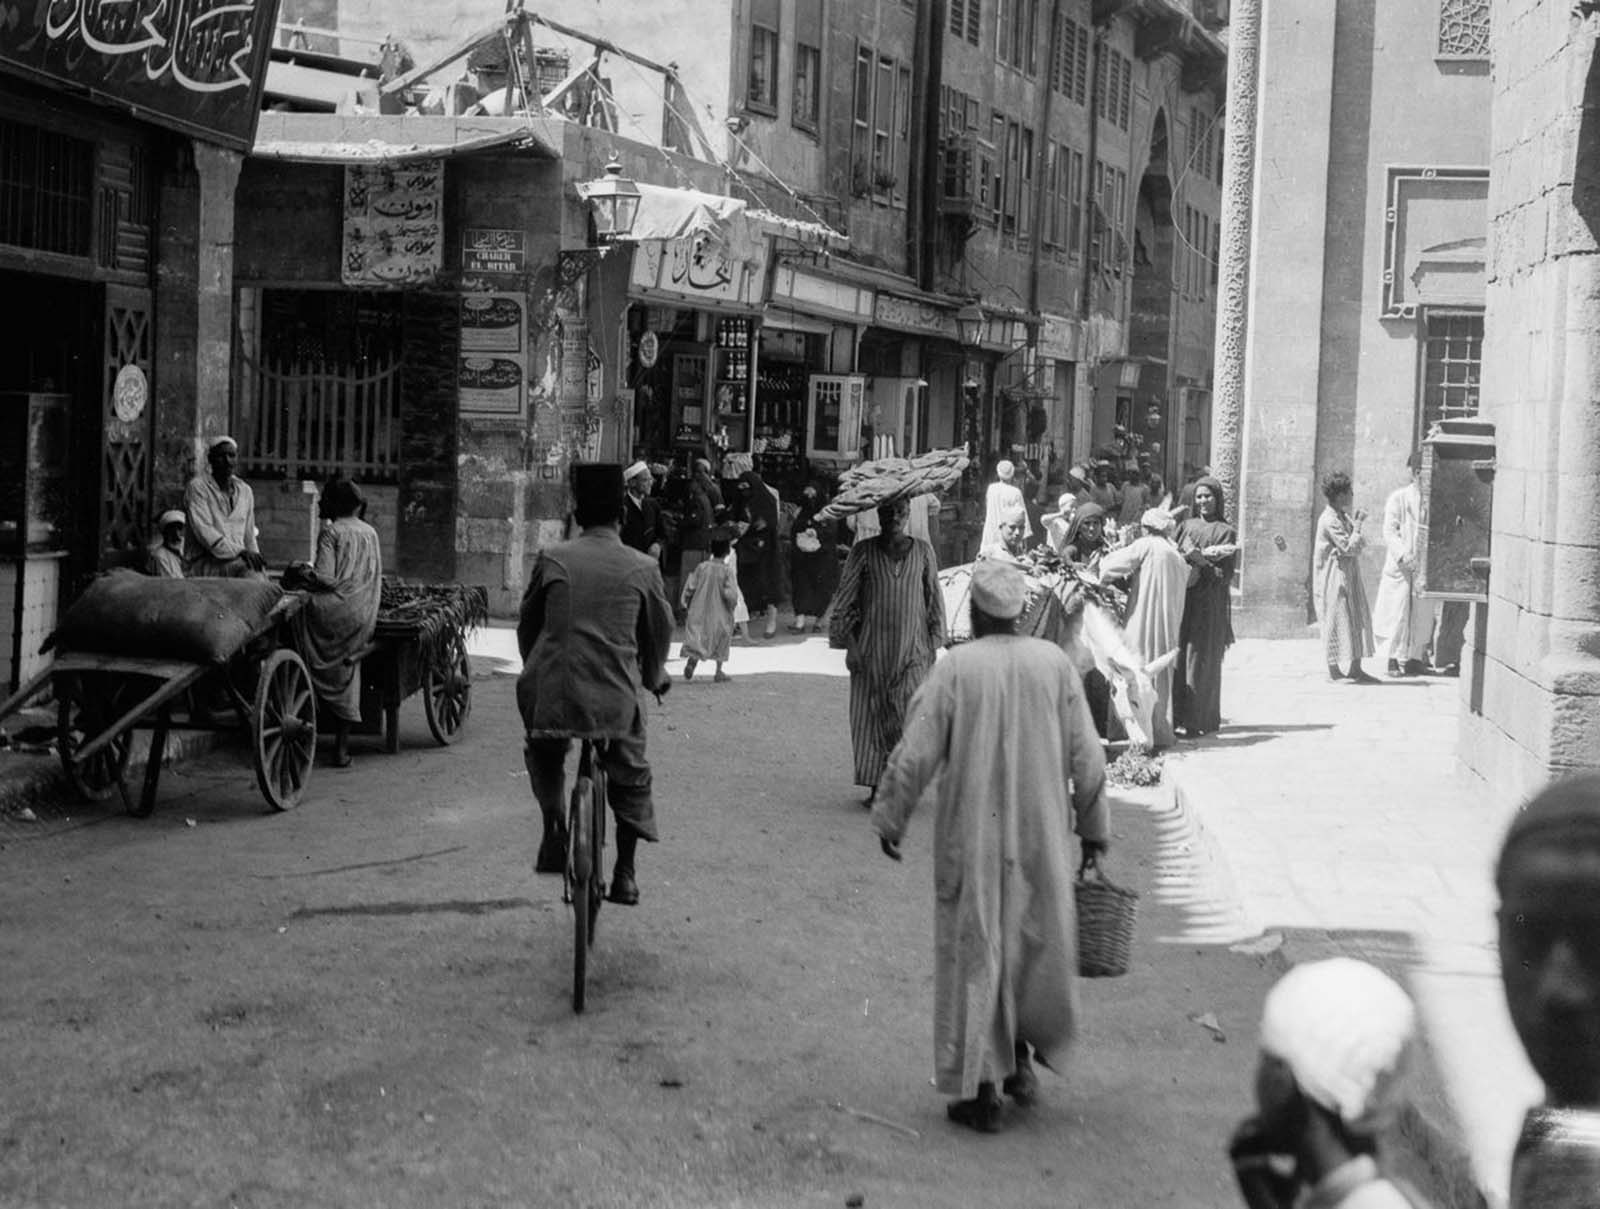 A street scene in Old Cairo. 1934.